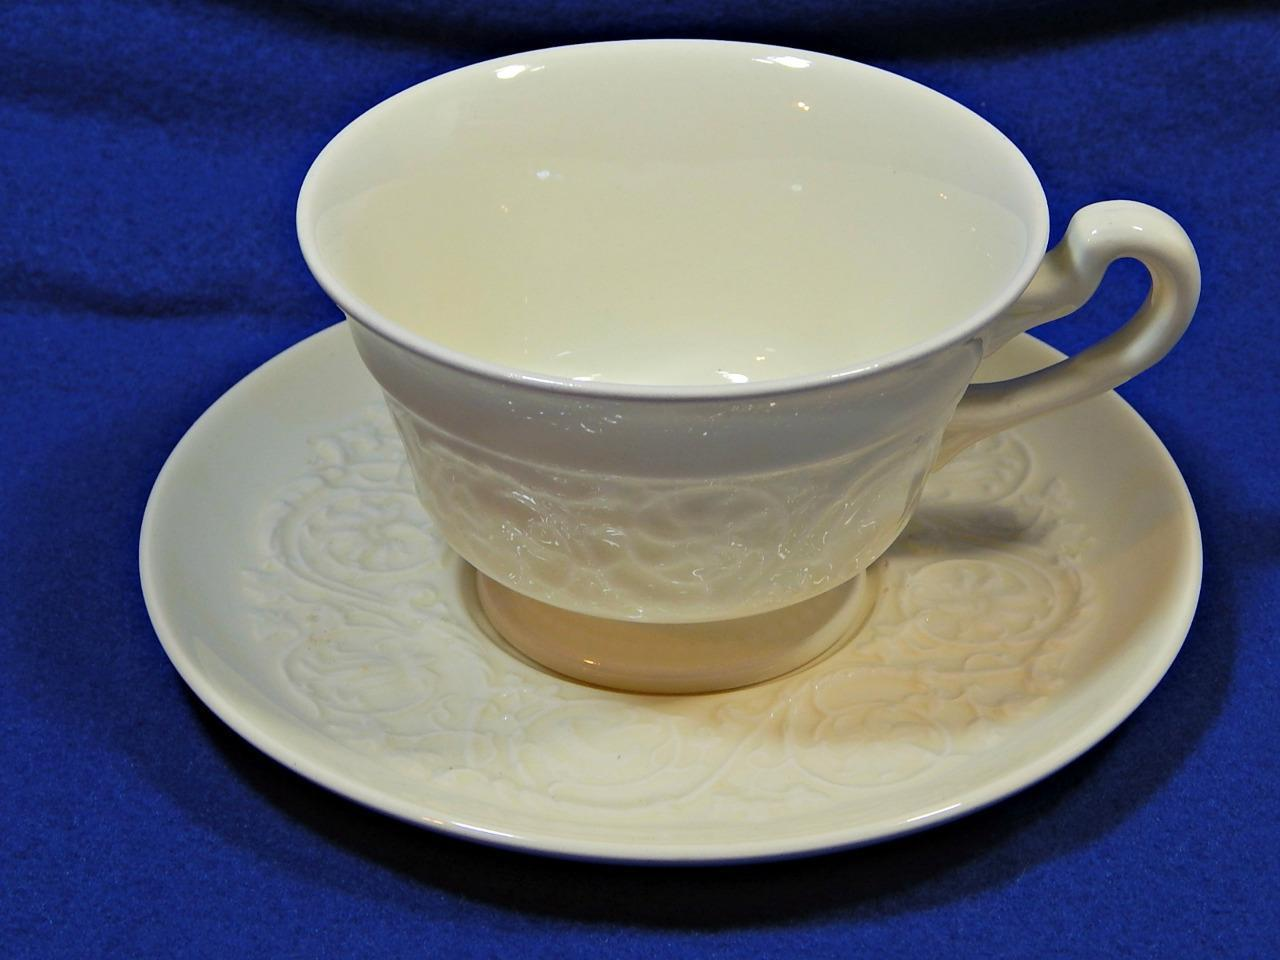 Patrician Plain Wedgwood FOOTED CUP + SAUCER off-white embossed rim vintage G42